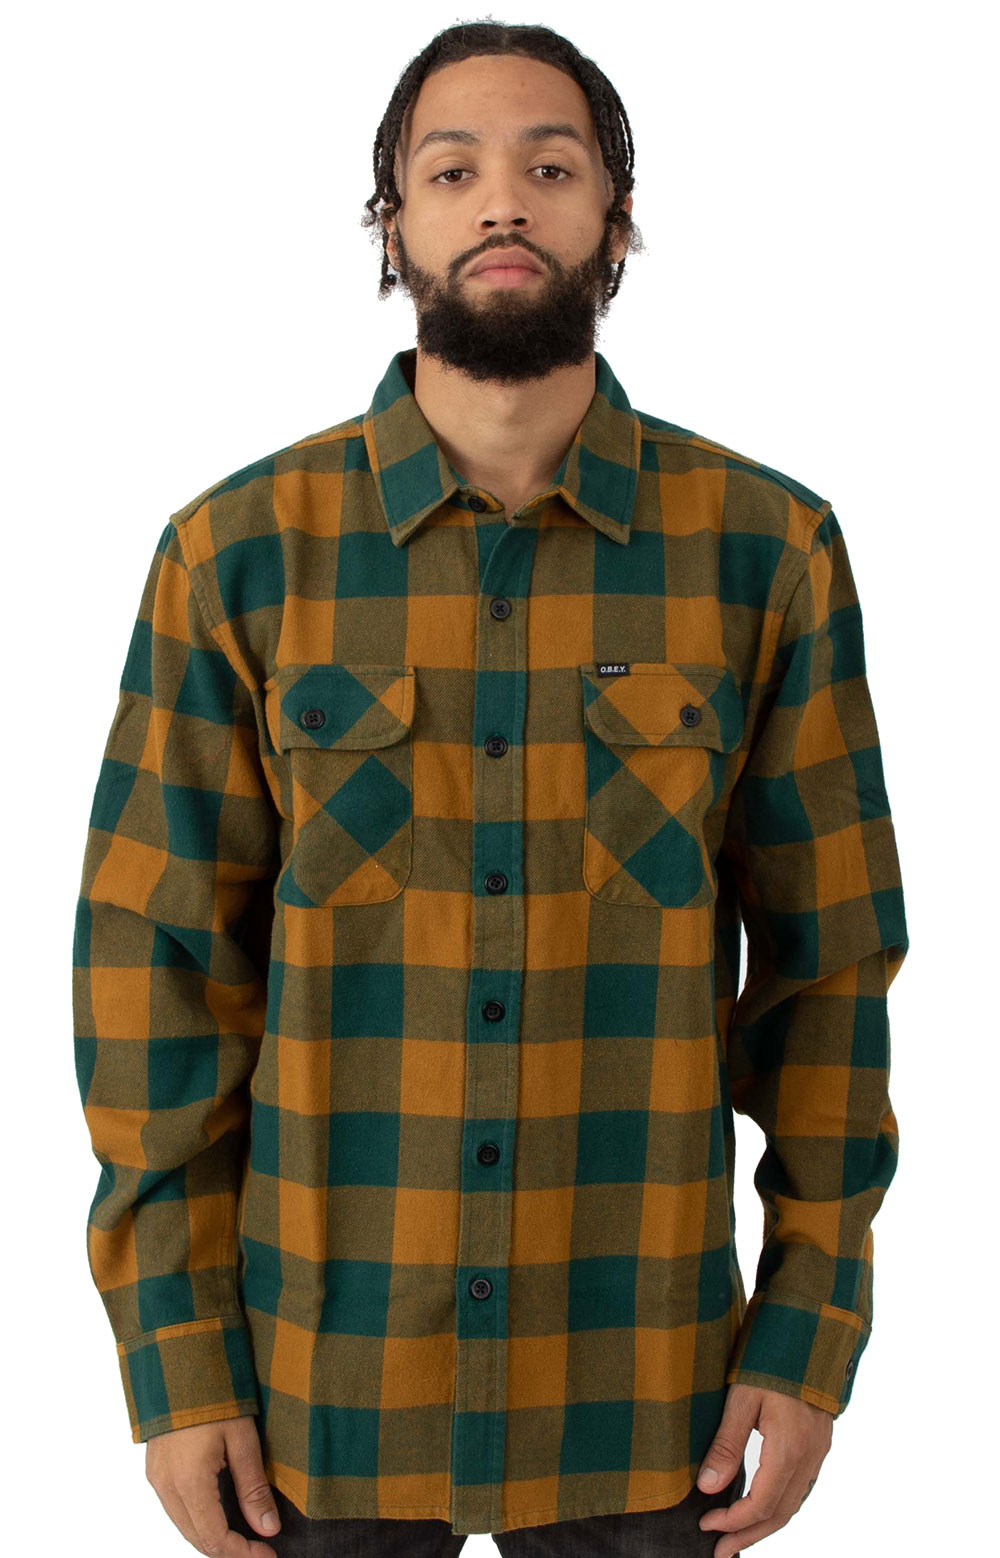 Vedder Woven Button-Up Shirt - Teal Multi